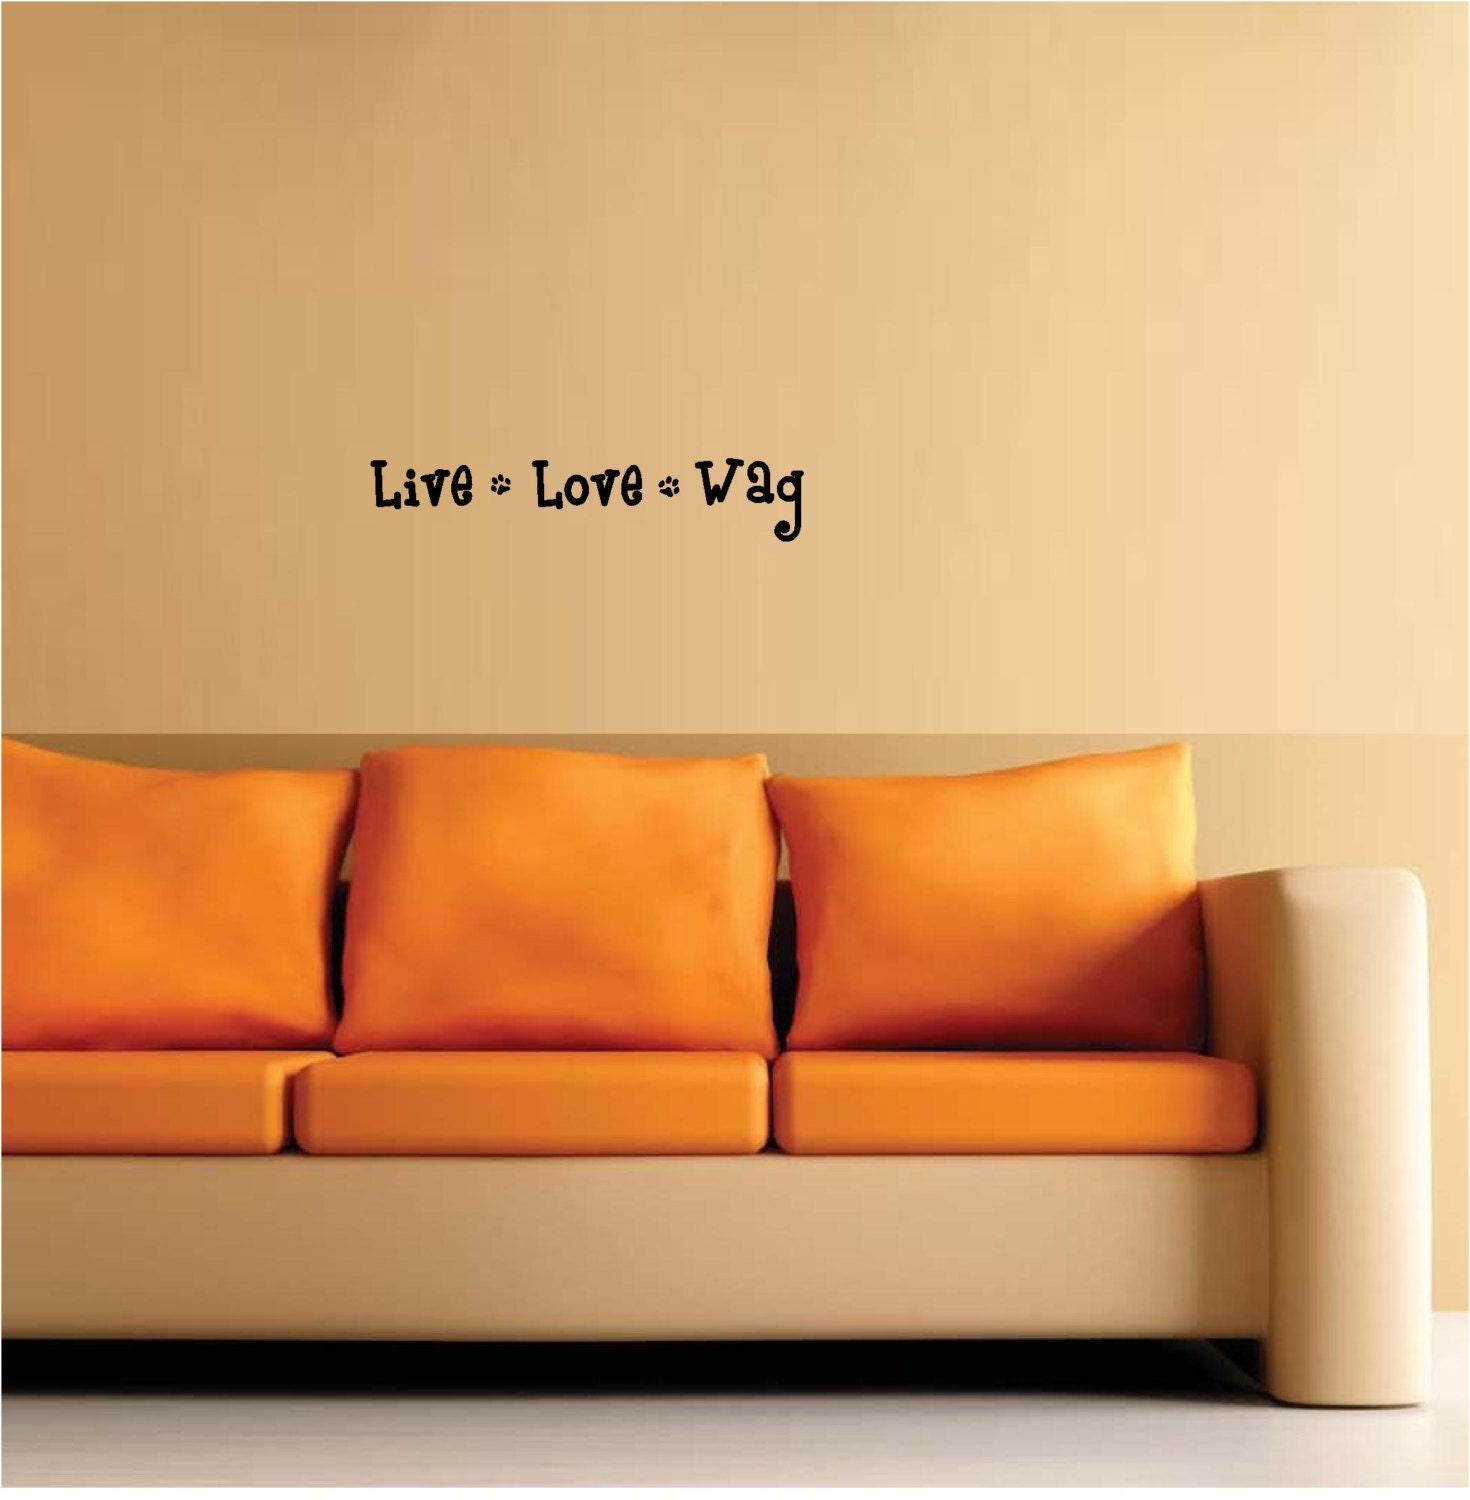 Live love wag paw prints wall art wall sayings vinyl letters